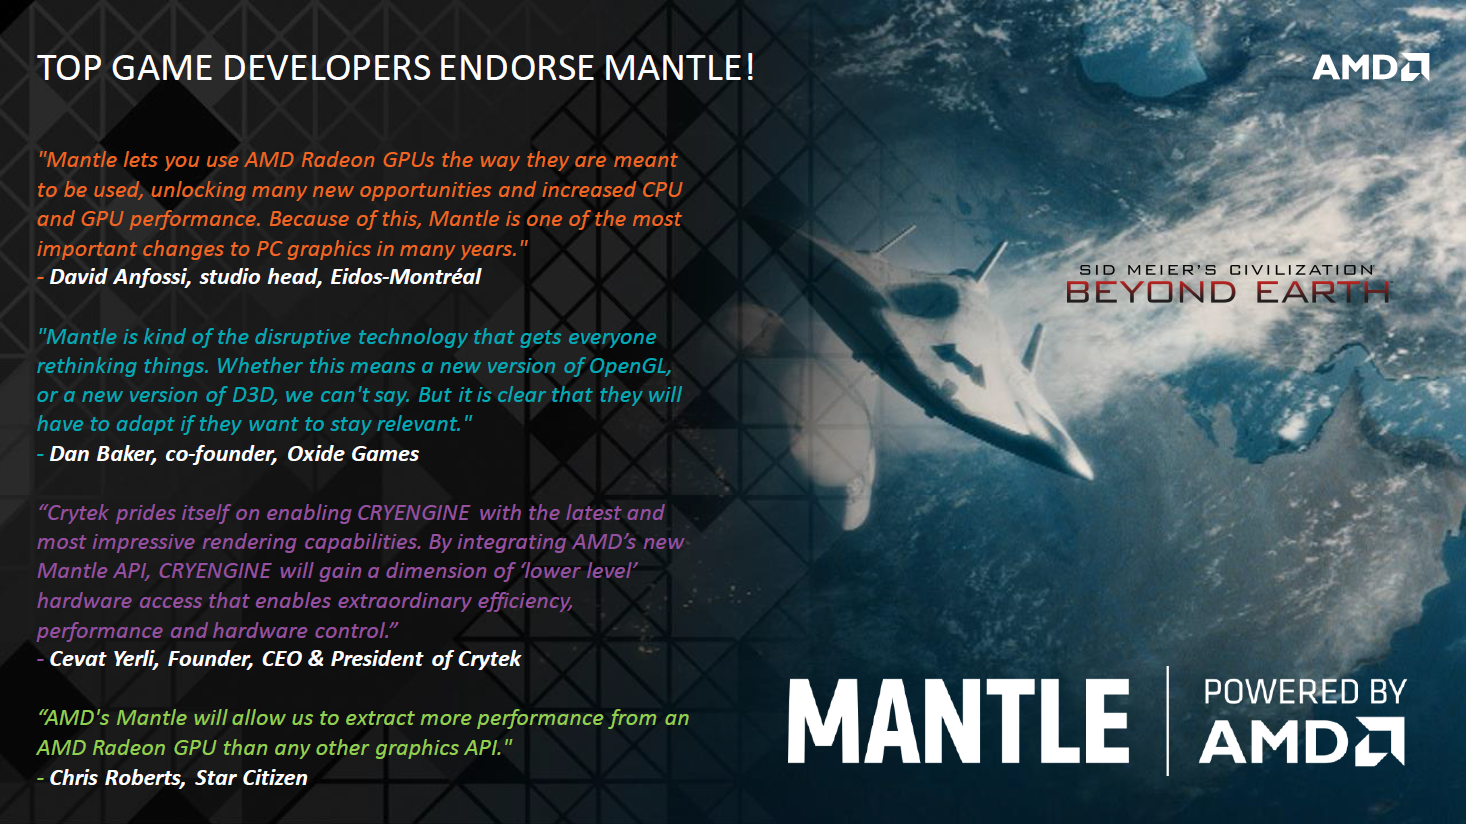 future-of-compute-mantle-amd